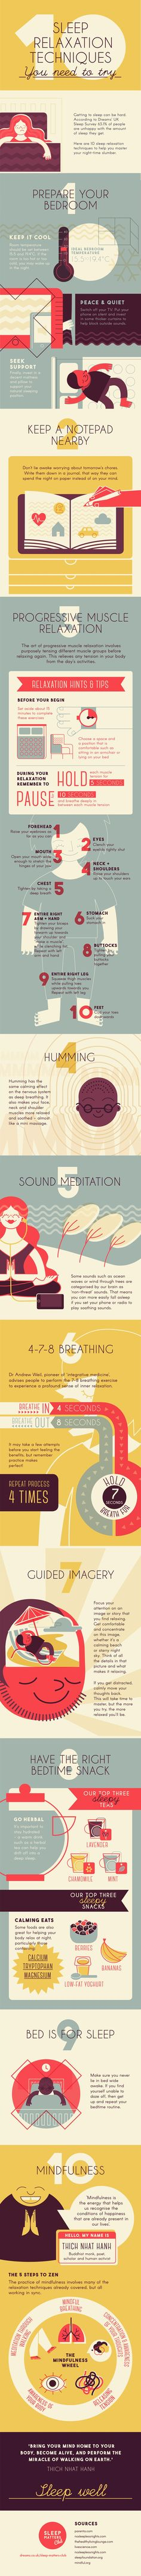 10 Sleep Relaxation Techniques #Infographic #Health #Sleep